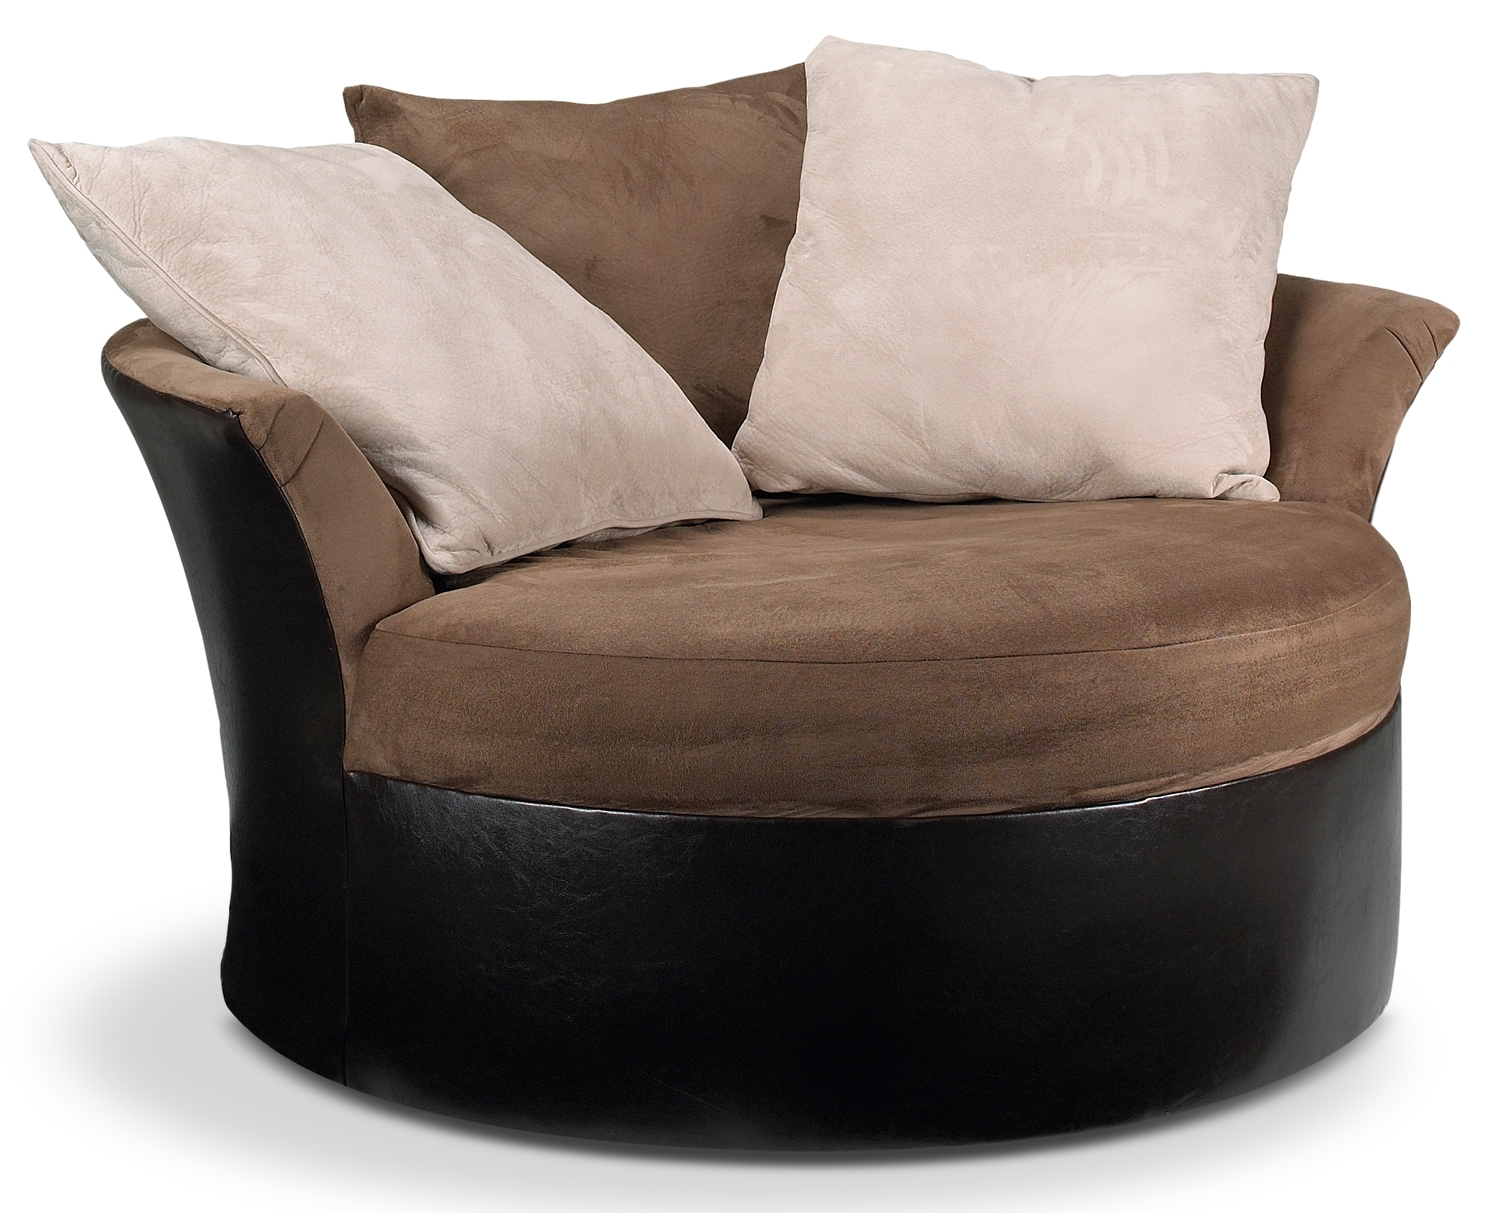 Round Sofa Chair Throughout Circular Sofa Chairs (Image 8 of 15)